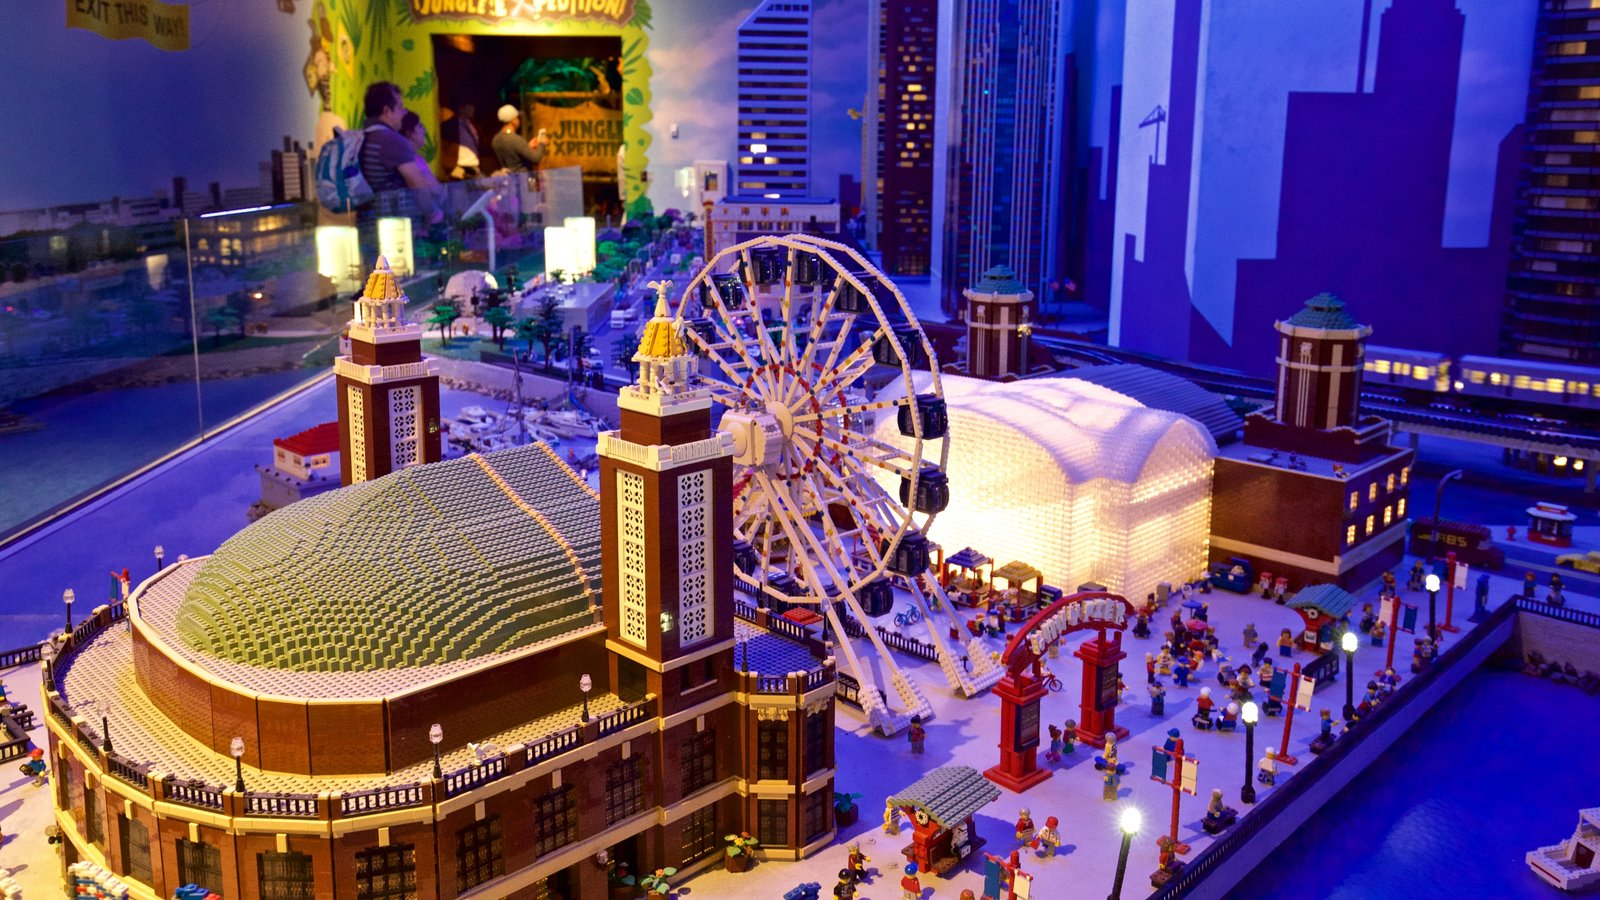 Legoland Discovery Center which includes interior views